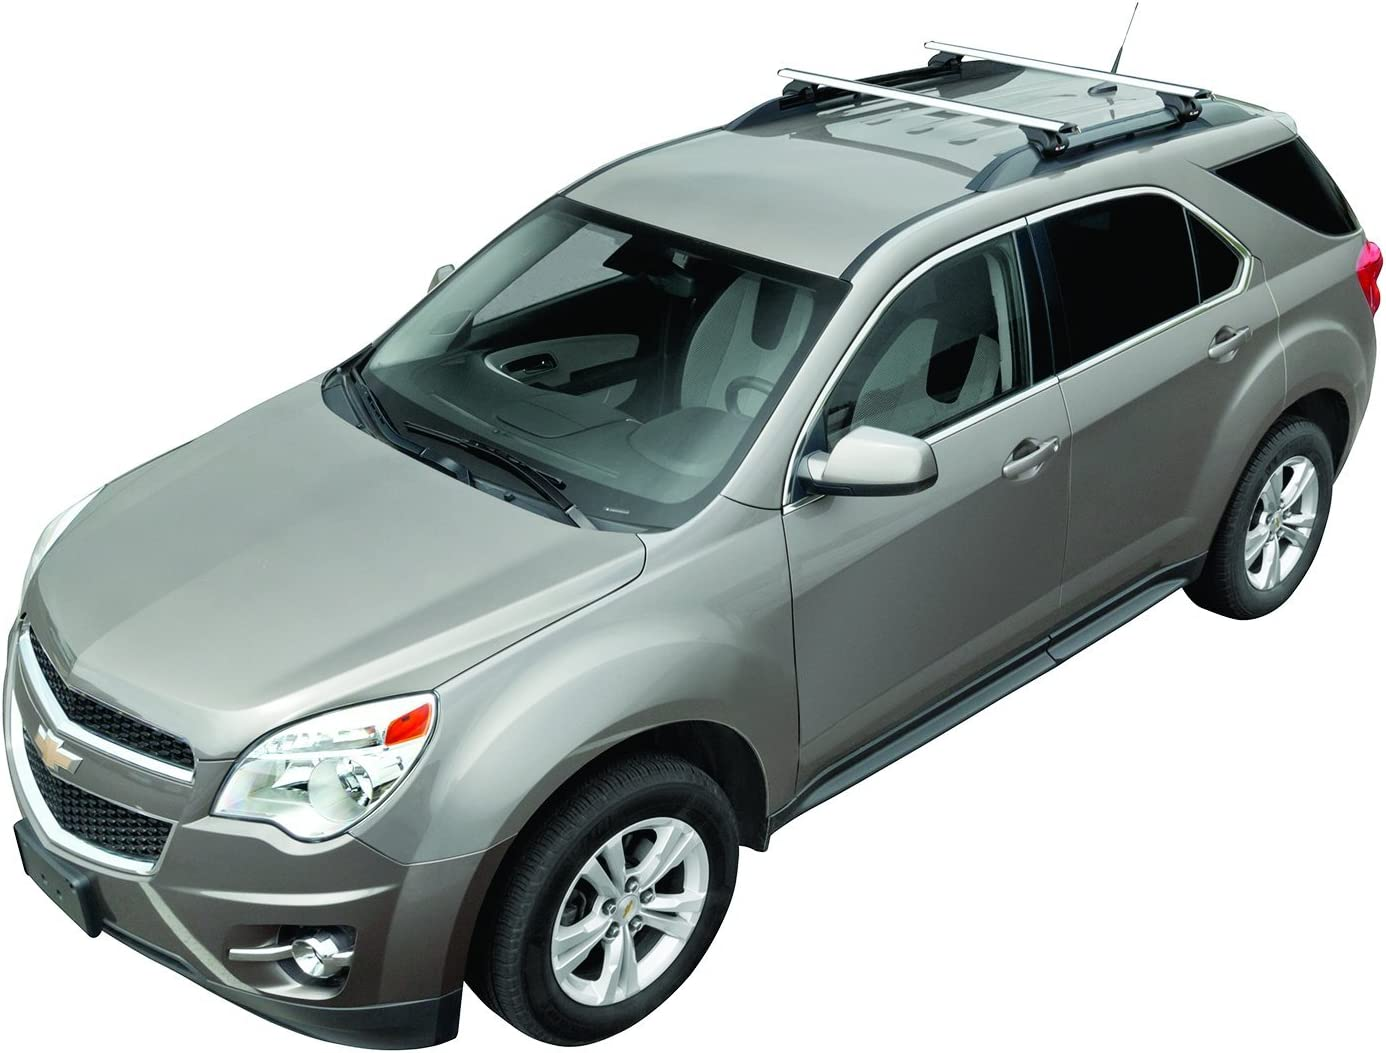 ROLA 59786 Removable Mount REX Series Roof Rack for Chevrolet Equinox GMC Terrain w//Factory Roof Rails